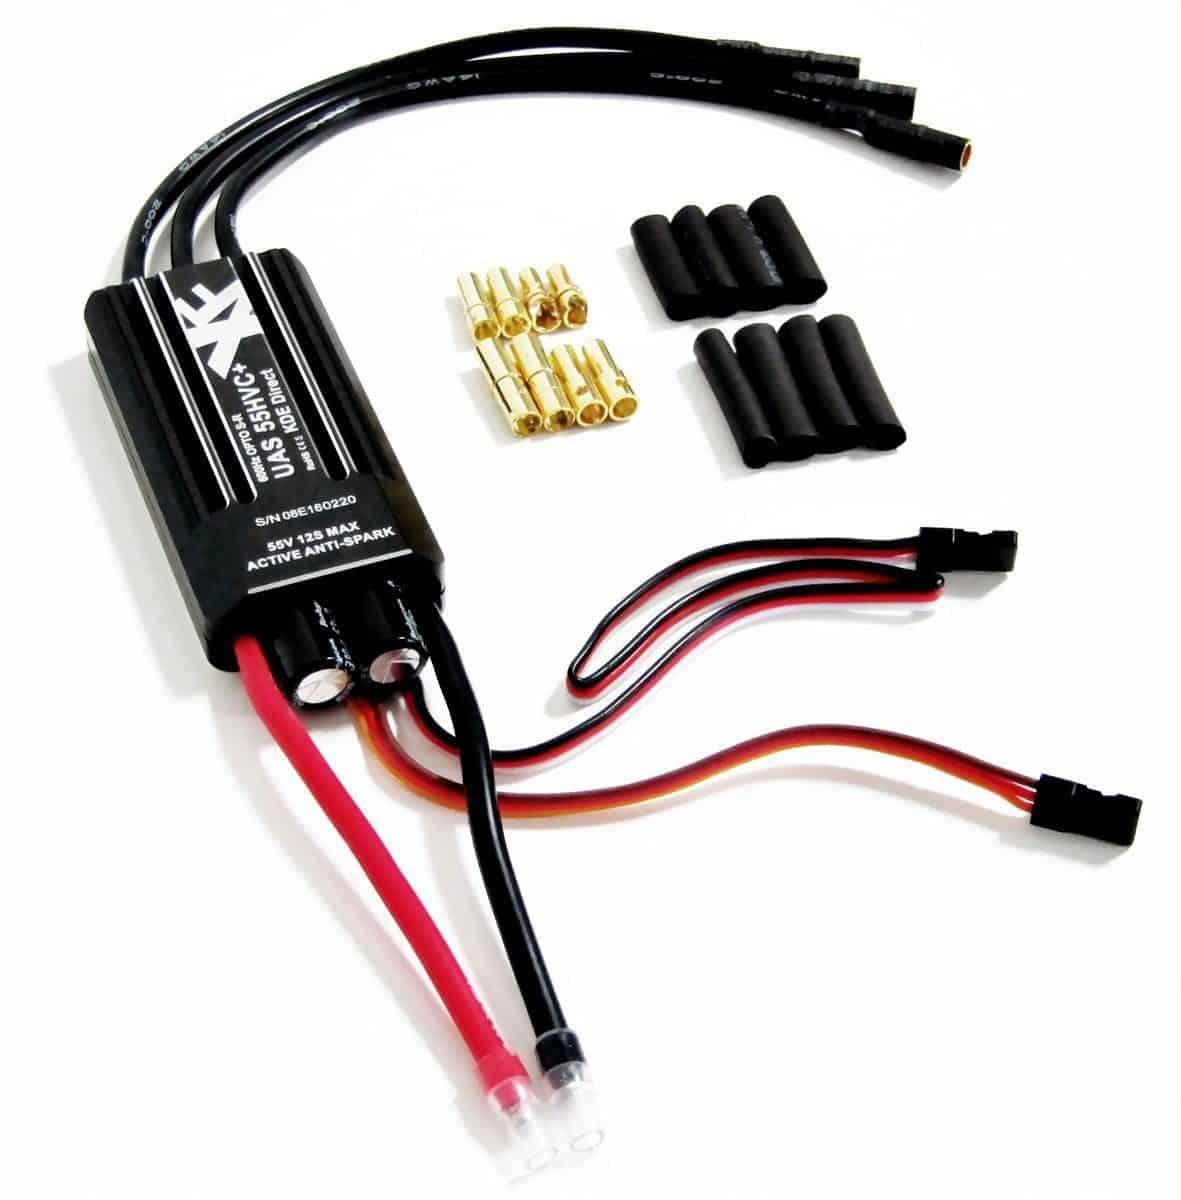 UAS Electronic Speed Controllers